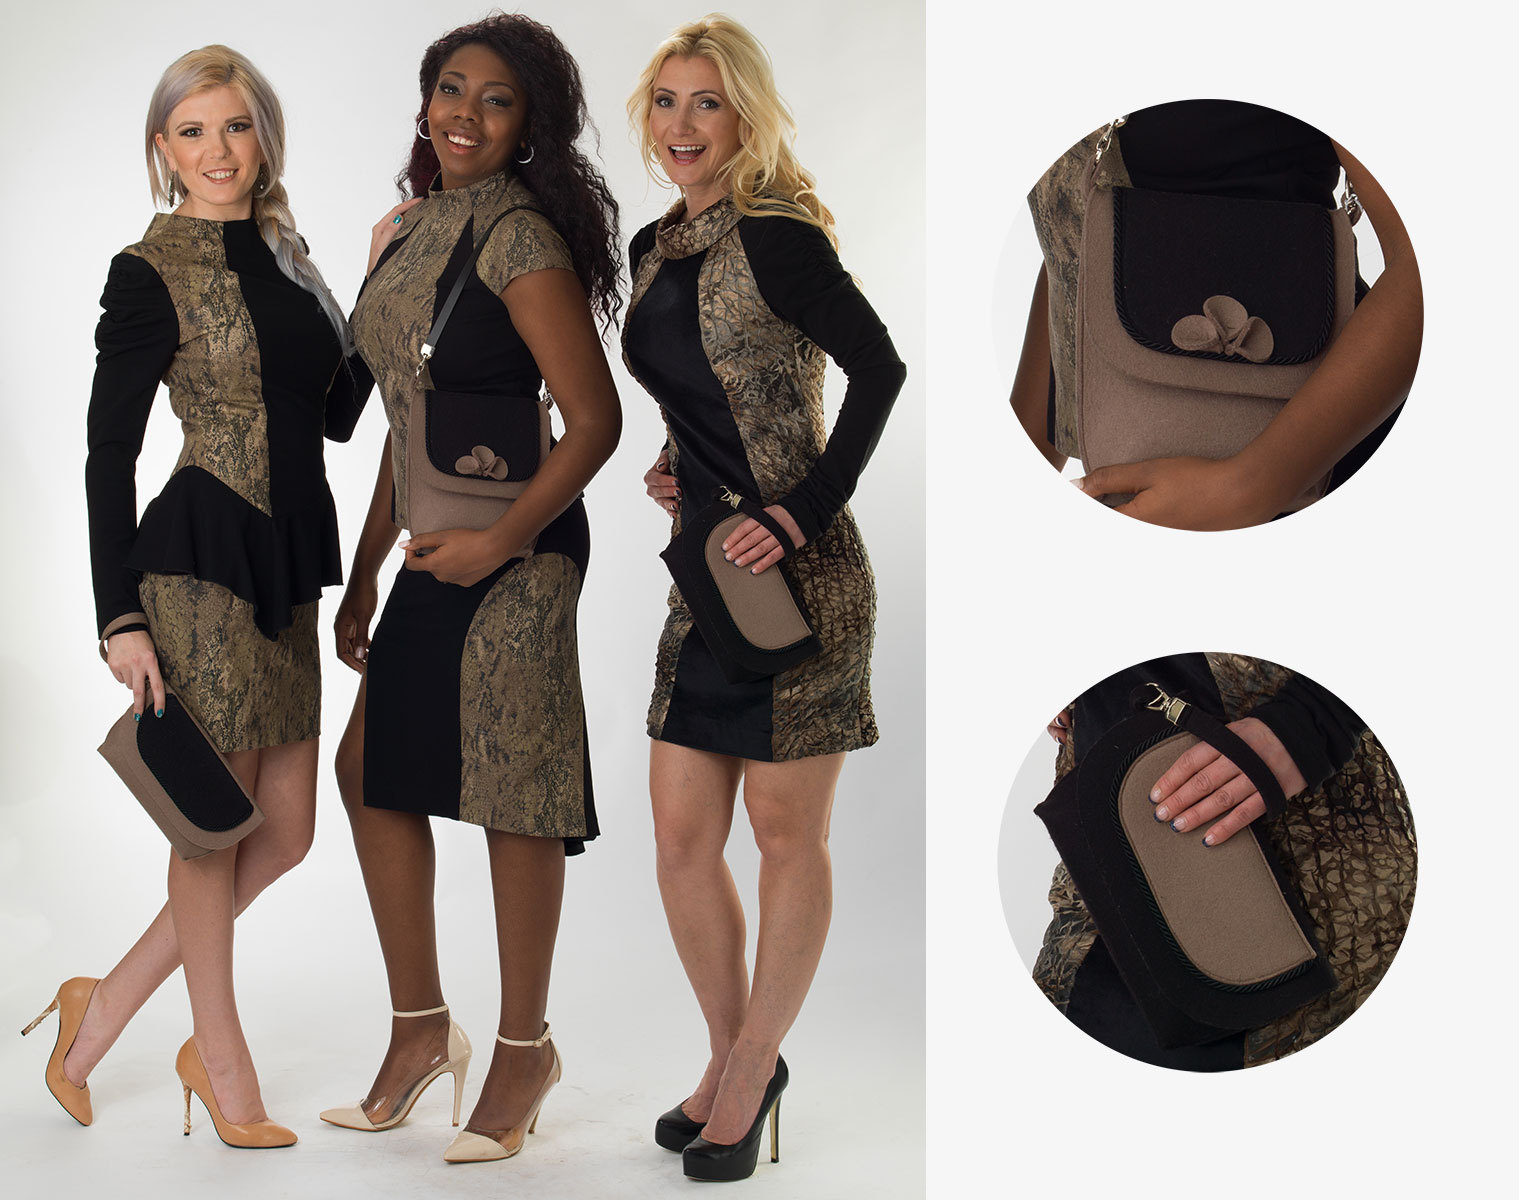 Animal print trio with matching clutch bags